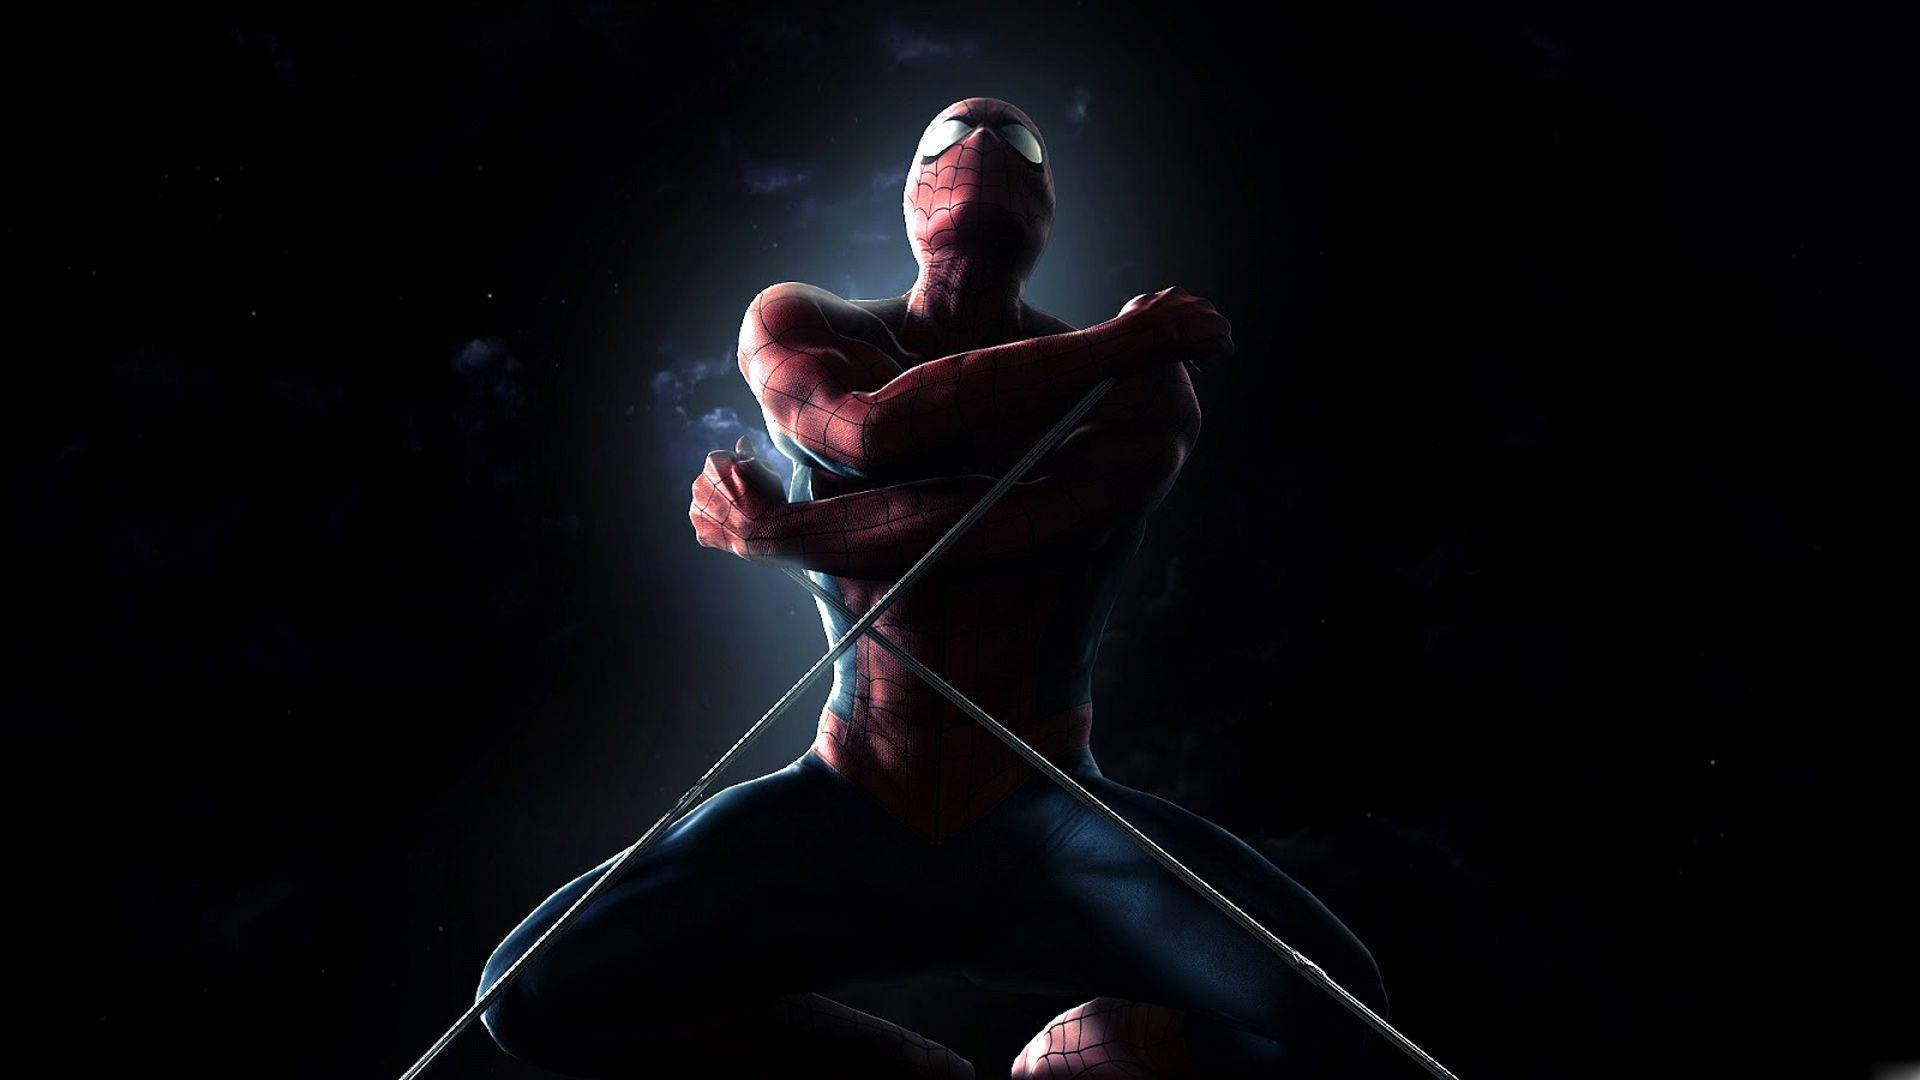 The Amazing Spiderman 2 Wide Exclusive HD Wallpapers #6529